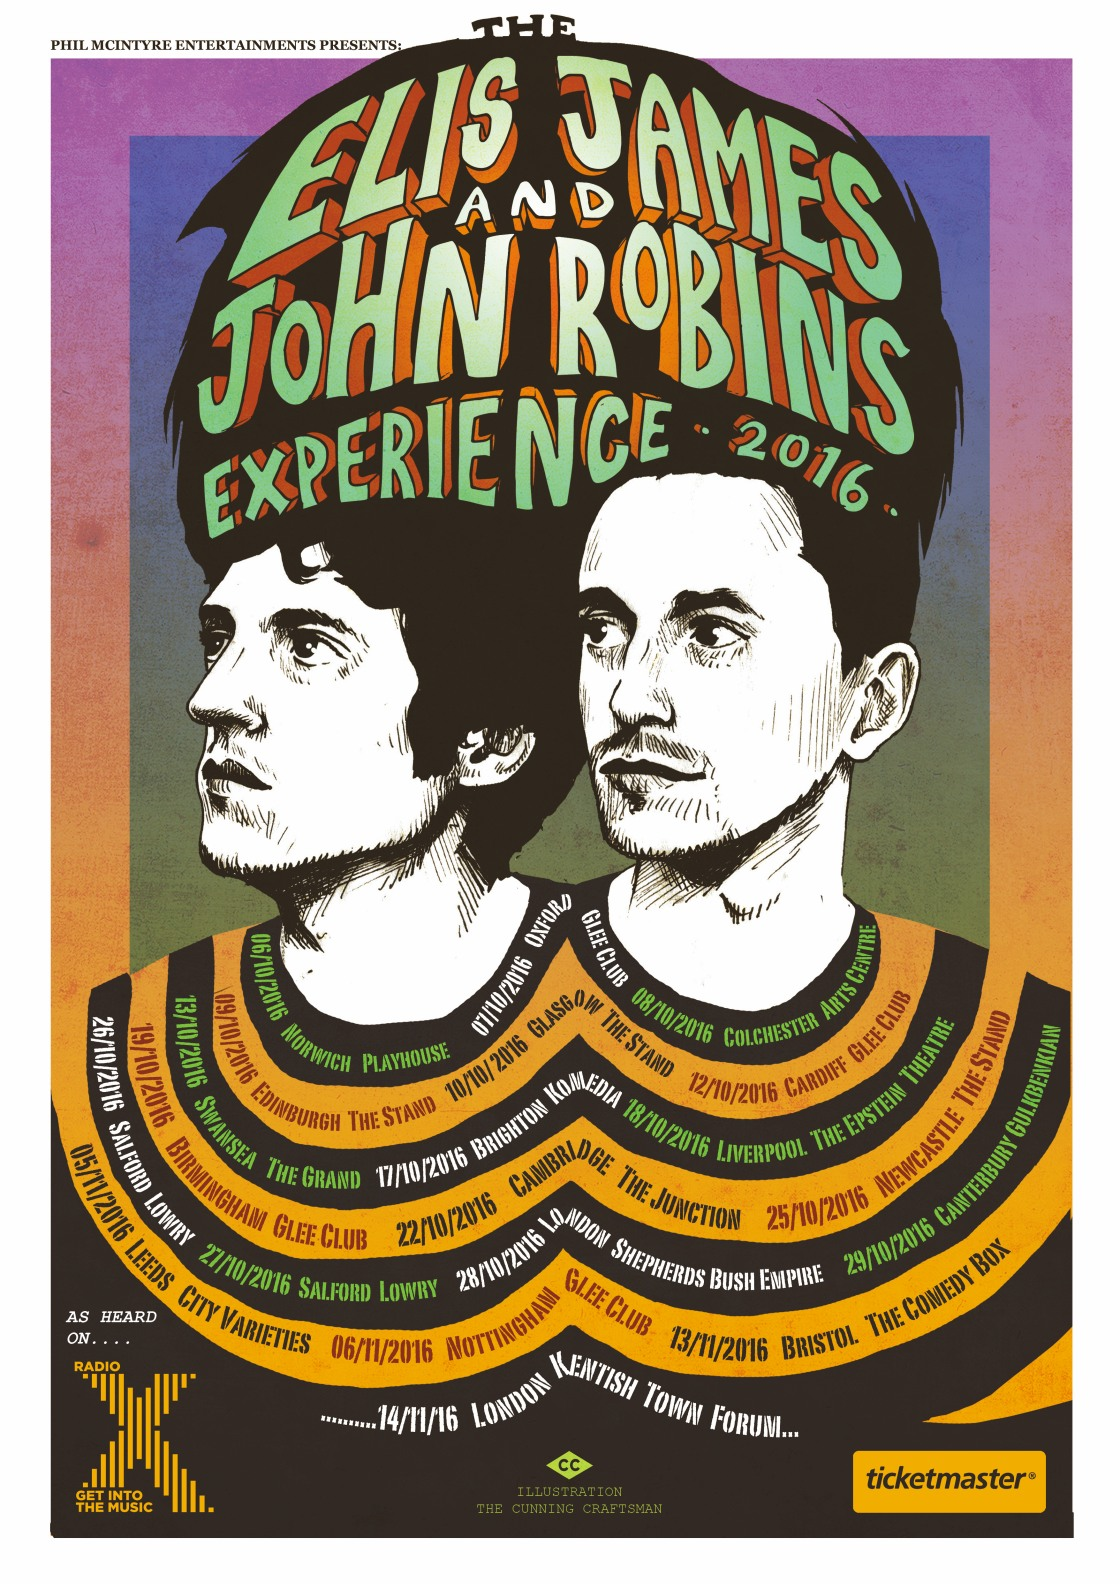 Click for tickets to The Elis James and John Robins Experience